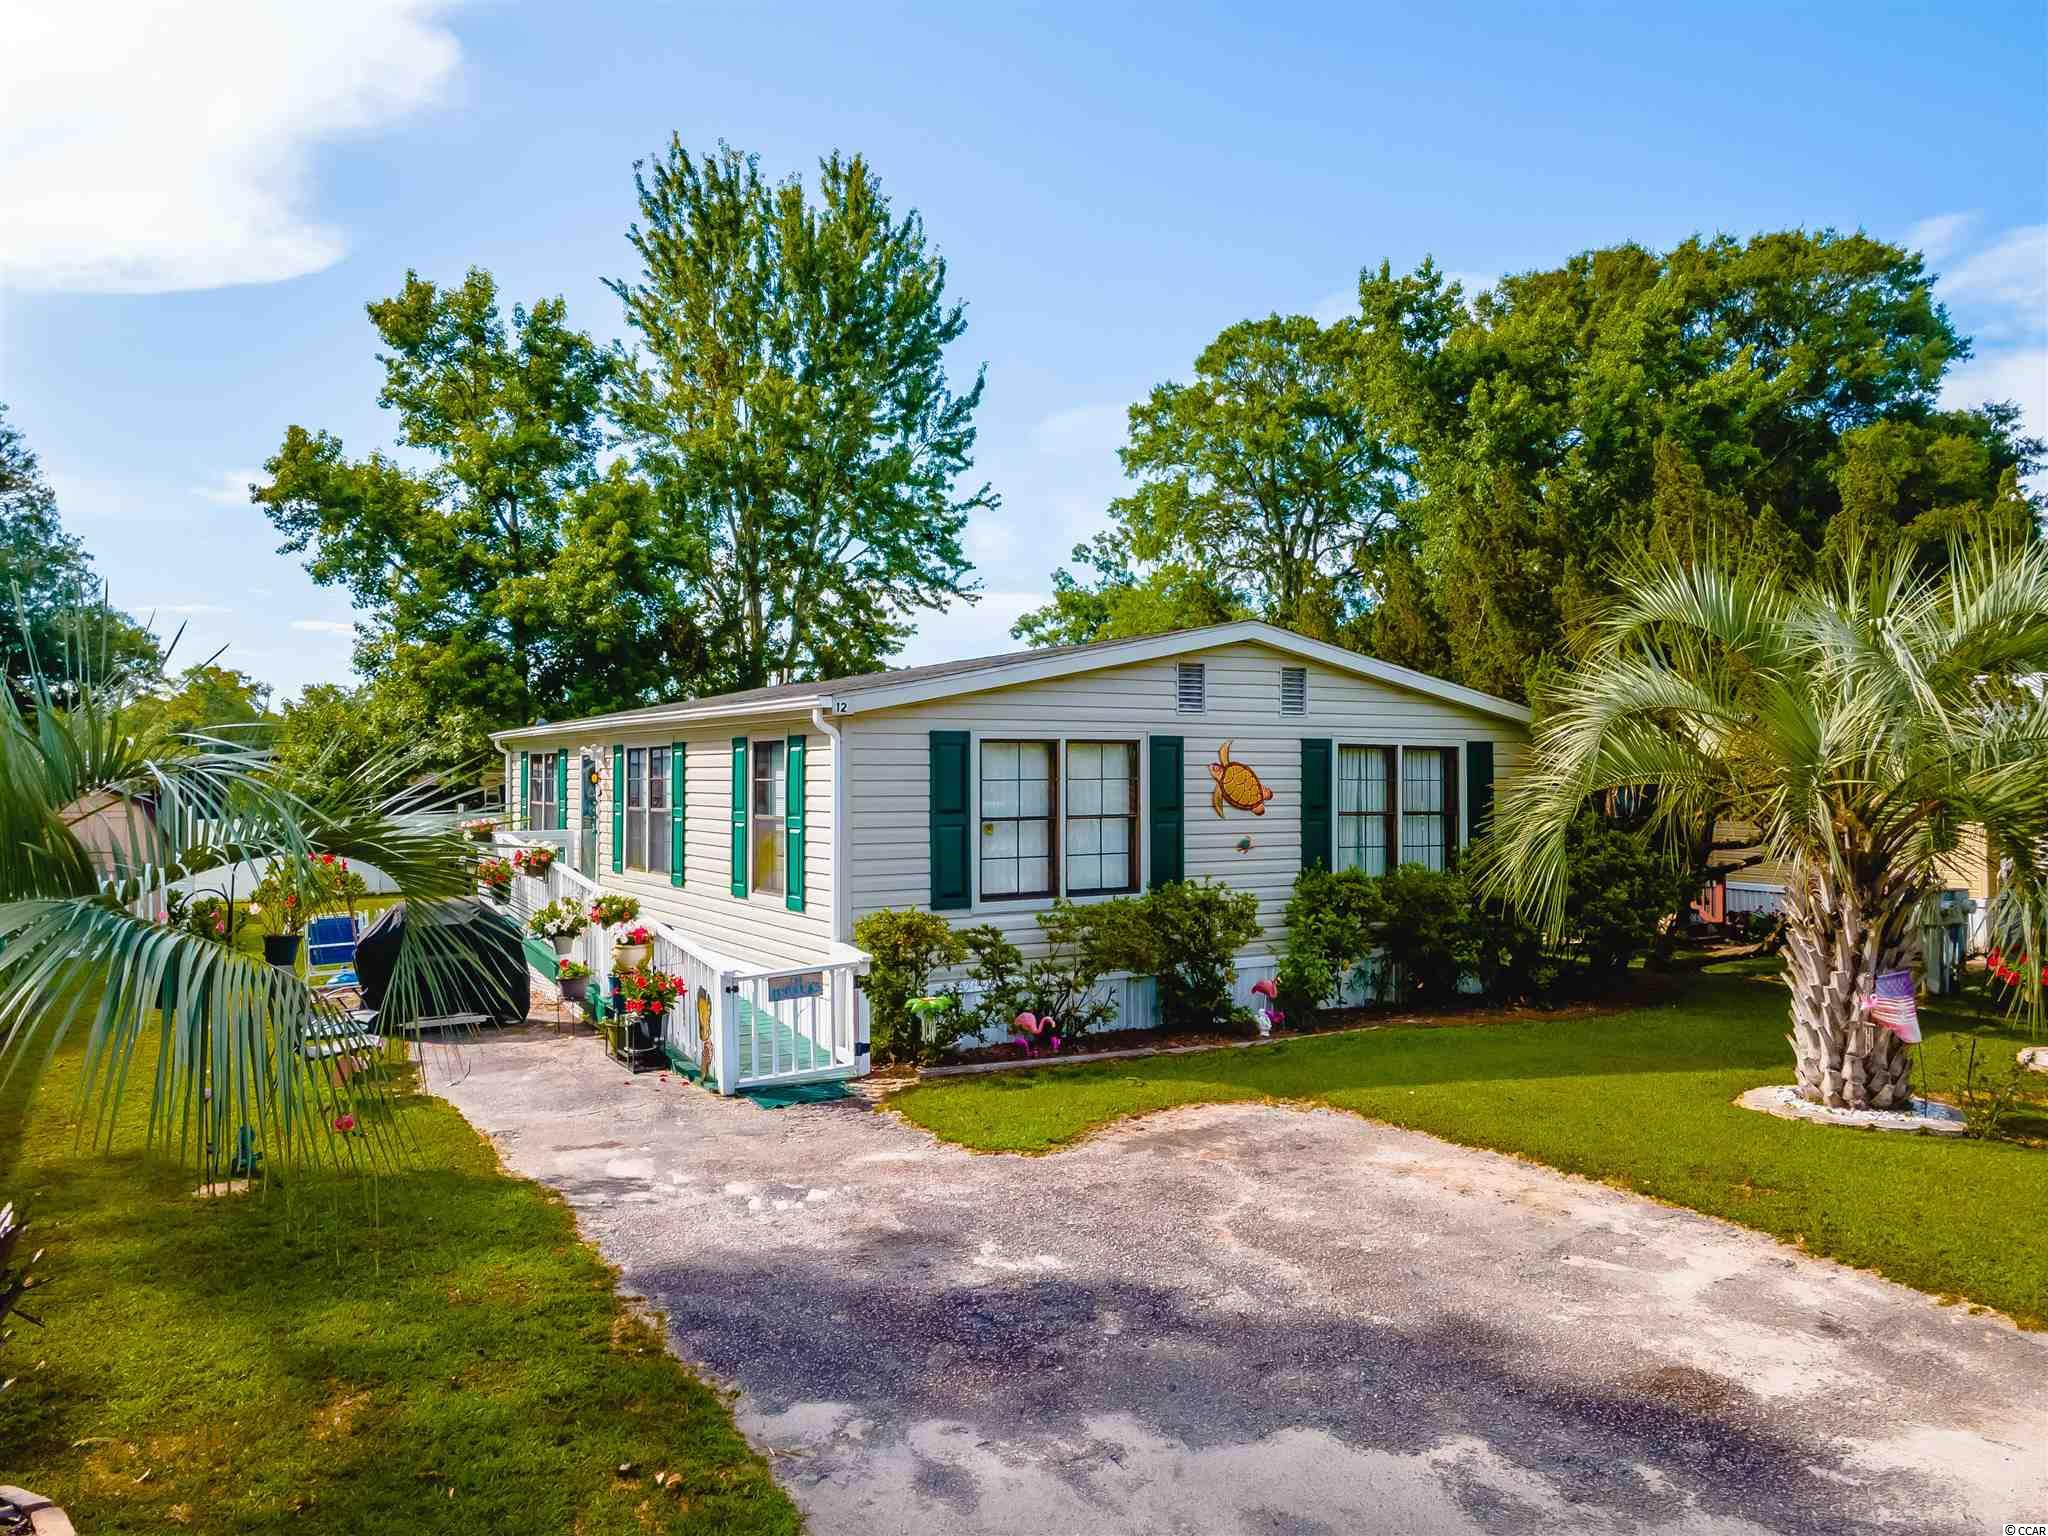 Cozy Double Wide now available in the Captain's Cove Community! Just a few miles North of Pawley's and a Stone's throw to the Marshwalk & Huntington State Beach, this is the best location on the South End of the Grand Strand. This charming home features 3 bedrooms, 2 bathrooms and 1,400 sq ft of indoor living space and tons of of outdoor living potential. The floor plan features an open kitchen and living room space, high ceilings, bright windows and durable vinyl flooring that resemble hardwood in some rooms. The kitchen comes equipped with bright white appliances, wooden cabinets, plenty of counter space, and a very spacious laundry room. This cottage style double wide also boasts high ceiling beams and a split bedroom and bathroom layout for the convenience of out of town guests or multigenerational living. During the summer, entertain in style on the side deck or relax near the sparkling community pool or head to the Inlet and grab a bite to eat at one of our many Water Front Dining Experiences. This home also comes equipped with a 2 car parking space for private off street parking. Appliances to convey with purchase of the home! Located in the highly coveted Coastal town of Murrells Inlet-It won't last long. Call today to schedule an appointment to come see it! (Captain's Cove is a 55+ Community) {Motorcycles & Pets Allowed, but no rentals}